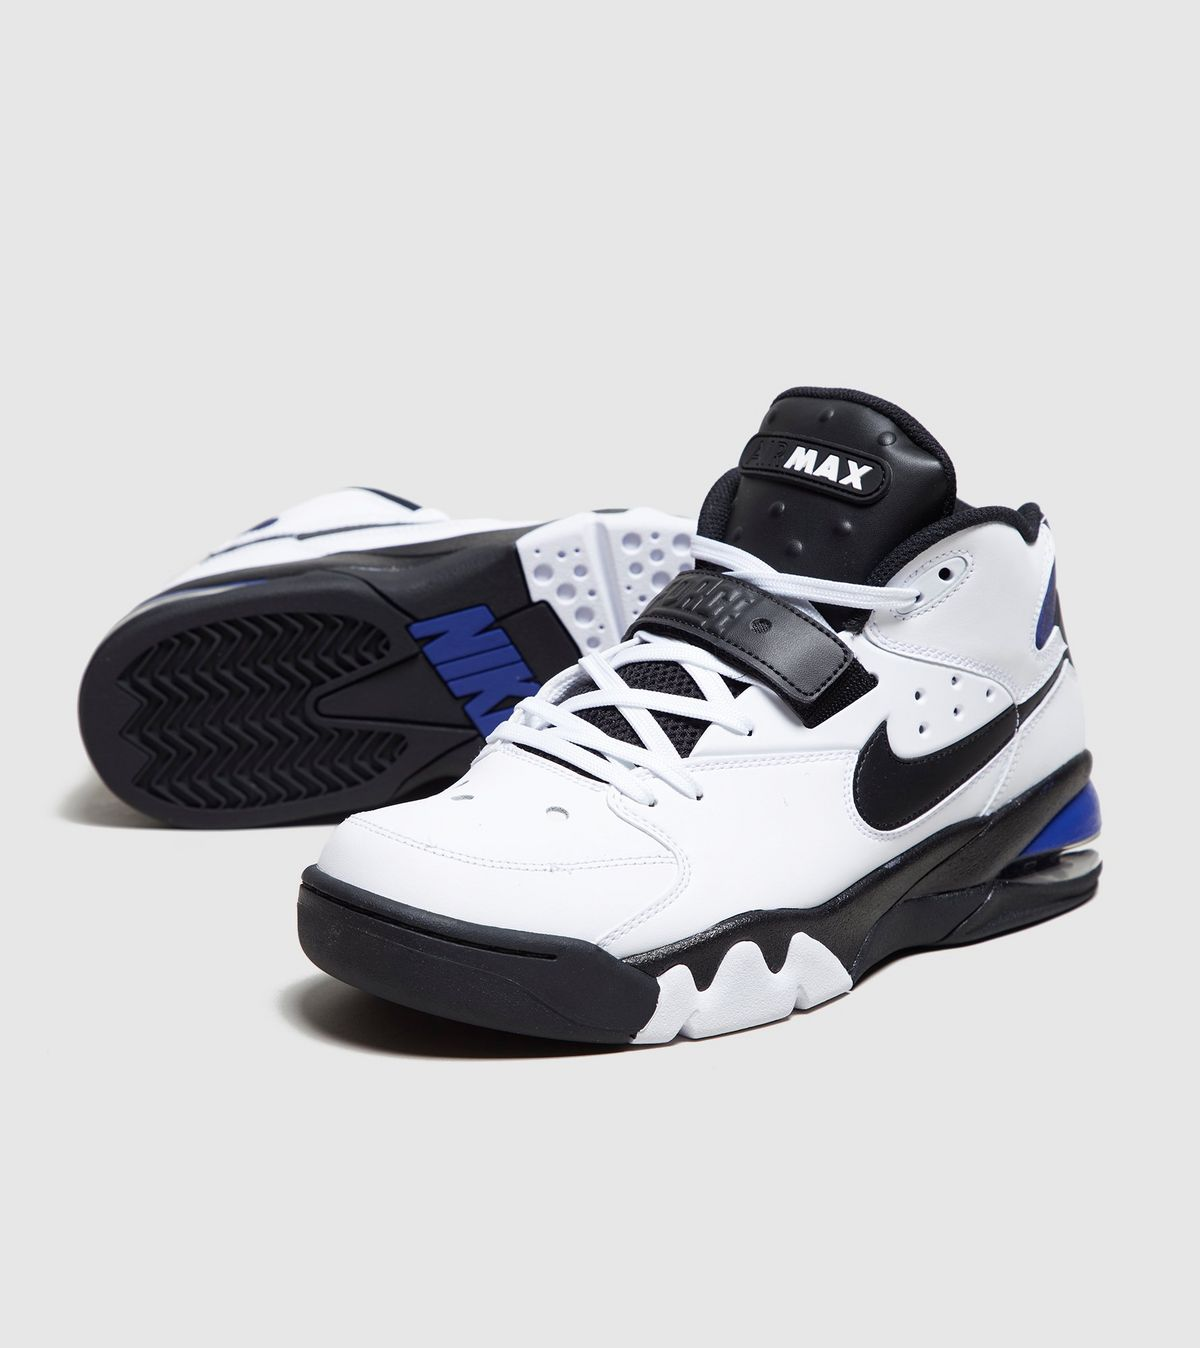 nike air force max buy nike sneakers shoes air force. Black Bedroom Furniture Sets. Home Design Ideas